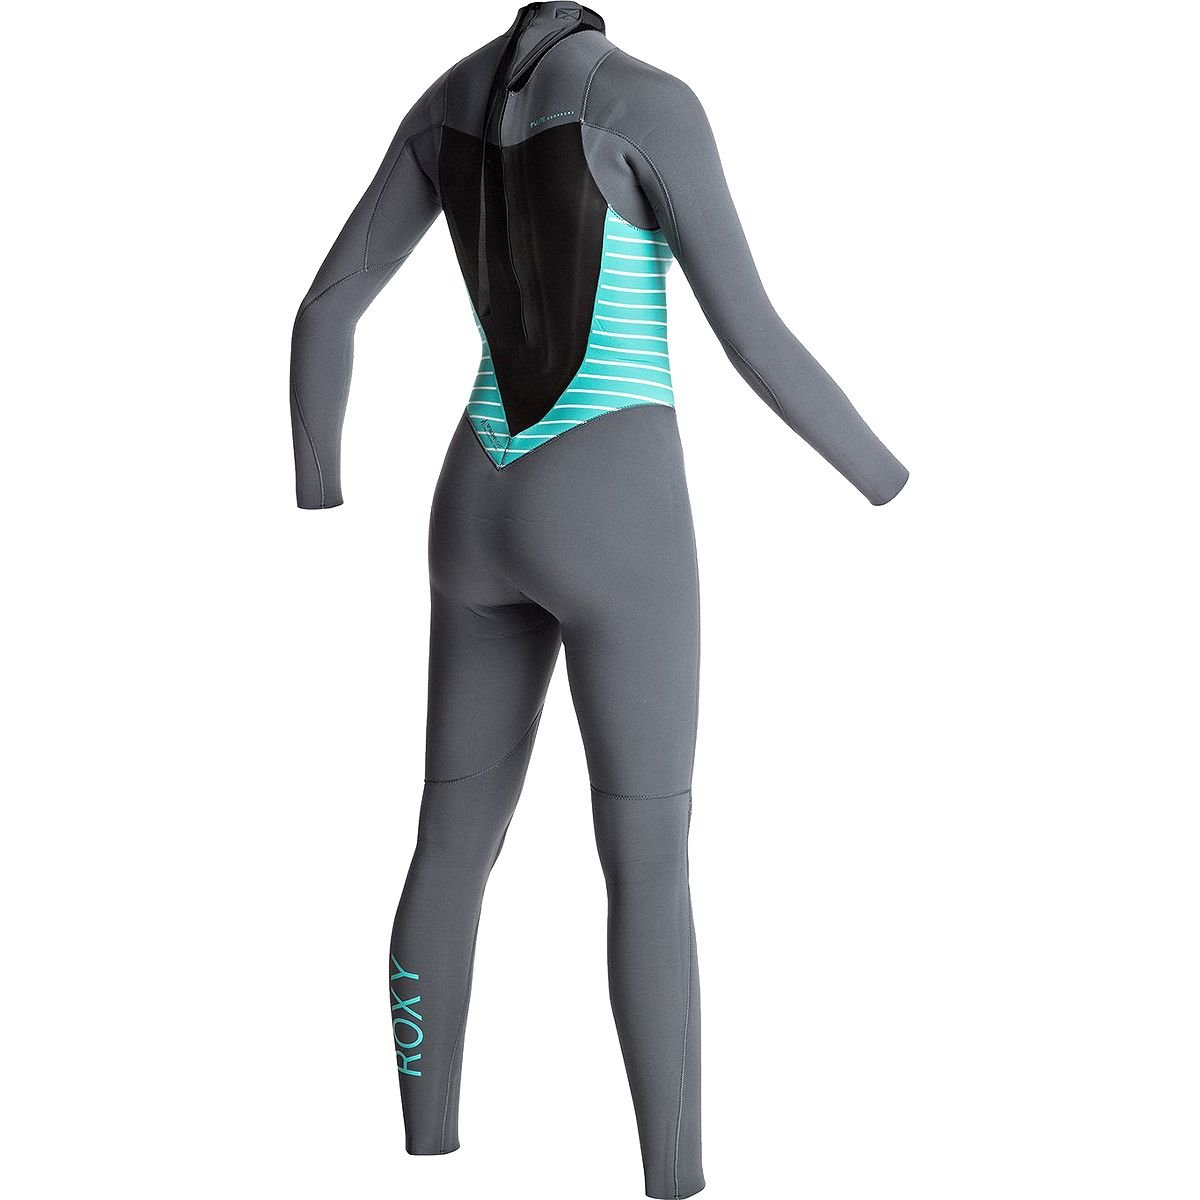 210fcabb72 Amazon.com   Roxy Womens 3 2Mm Syncro Series Back Zip GBS Wetsuit  Erjw103024   Women S Roxy Wetsuit   Sports   Outdoors